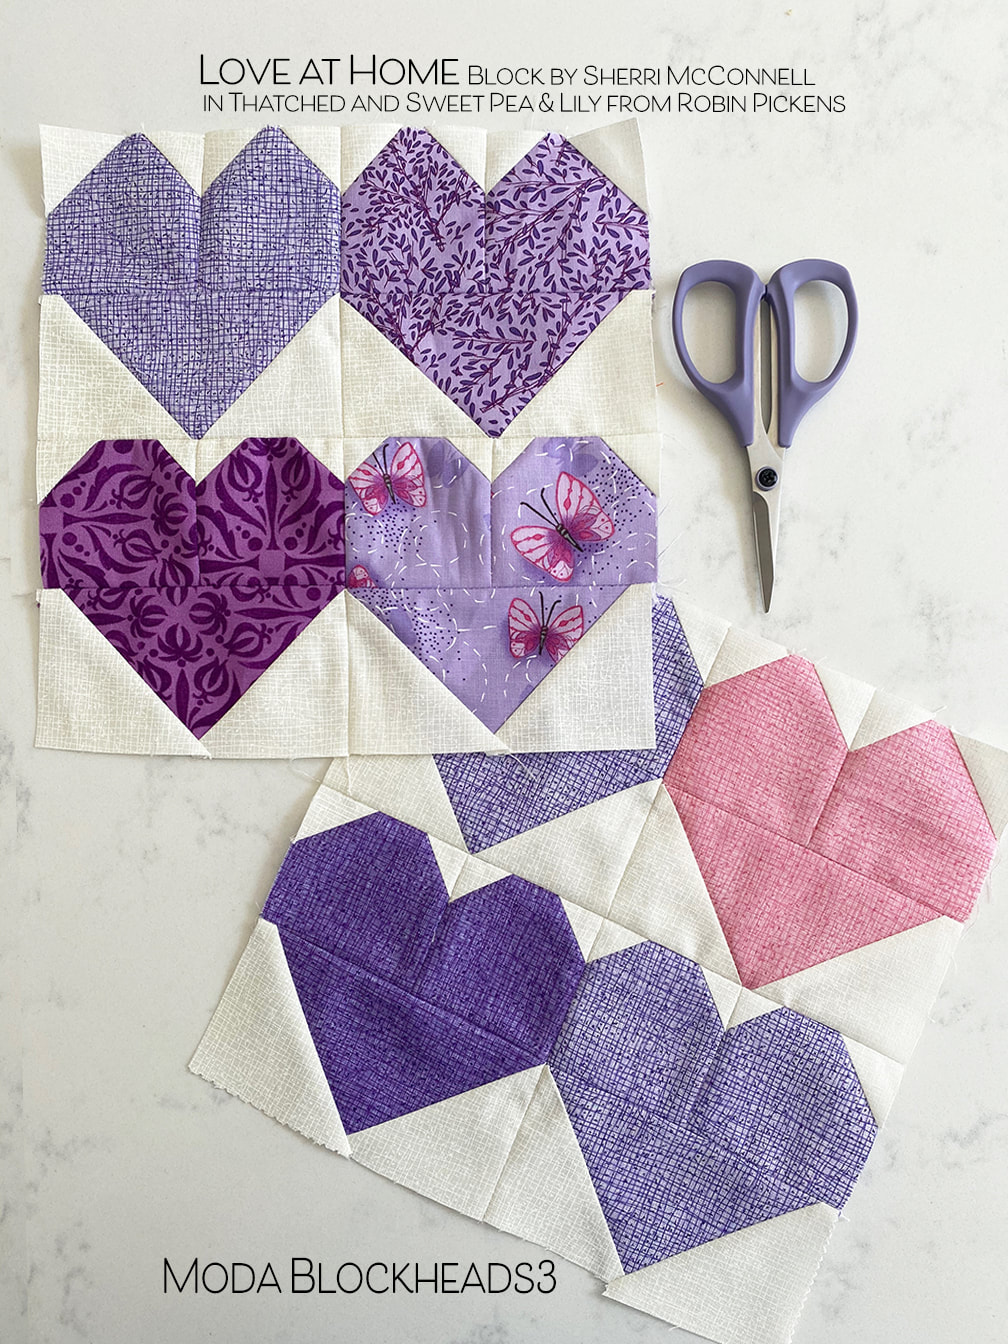 Love at Home quilt block in Thatched and Sweet Pea and Lily from Robin Pickens